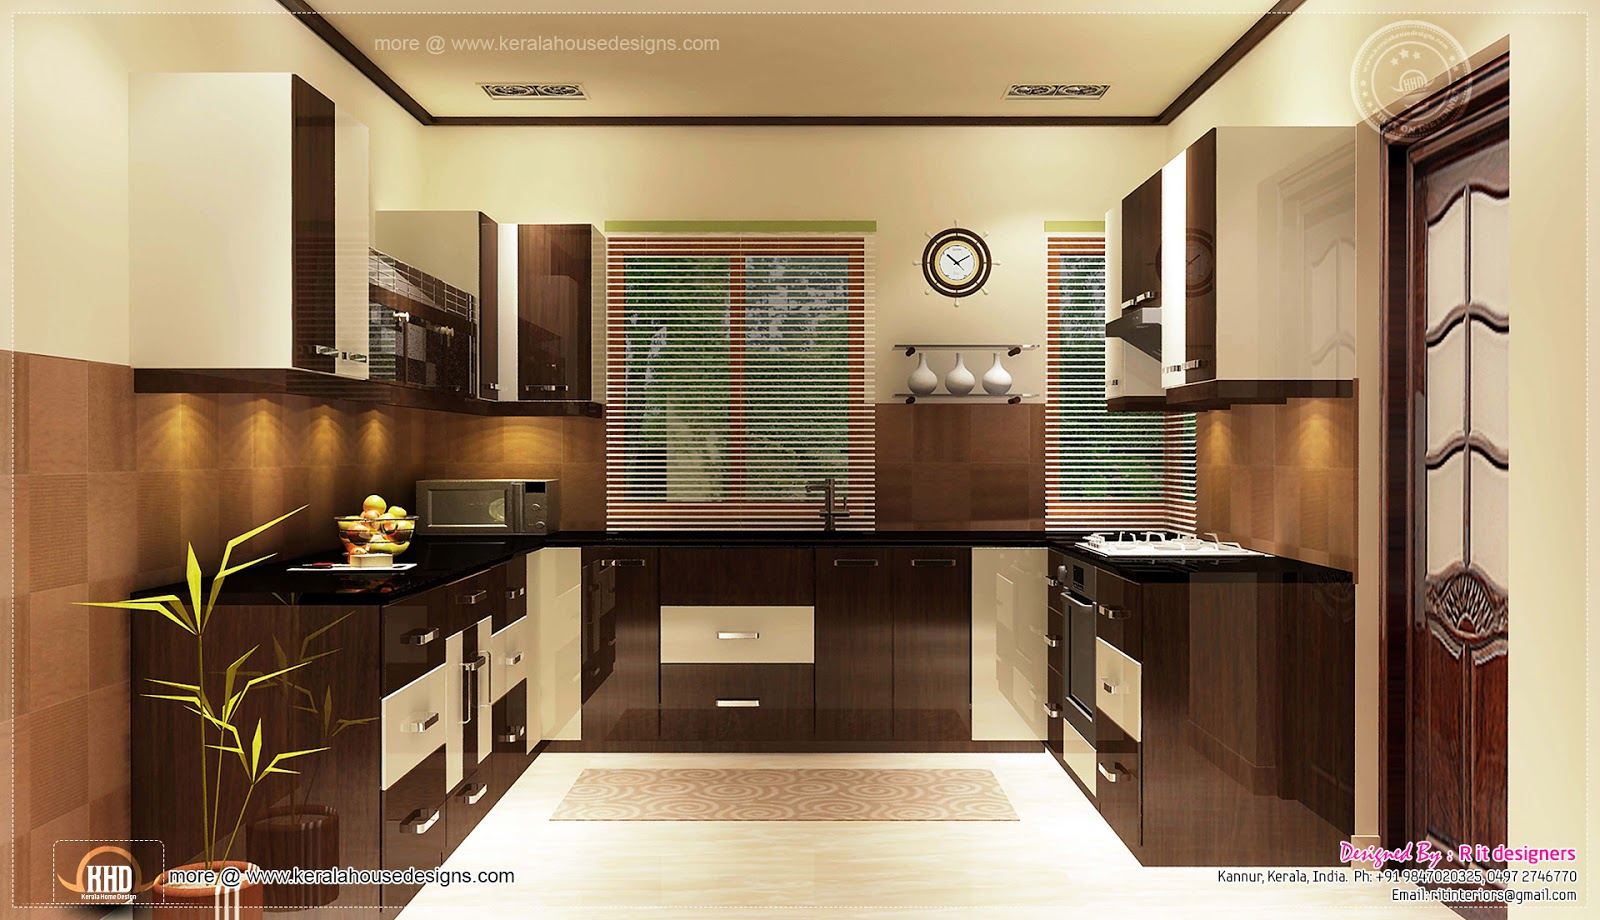 Home interior designs by rit designers kerala home for Interior designs photos for home